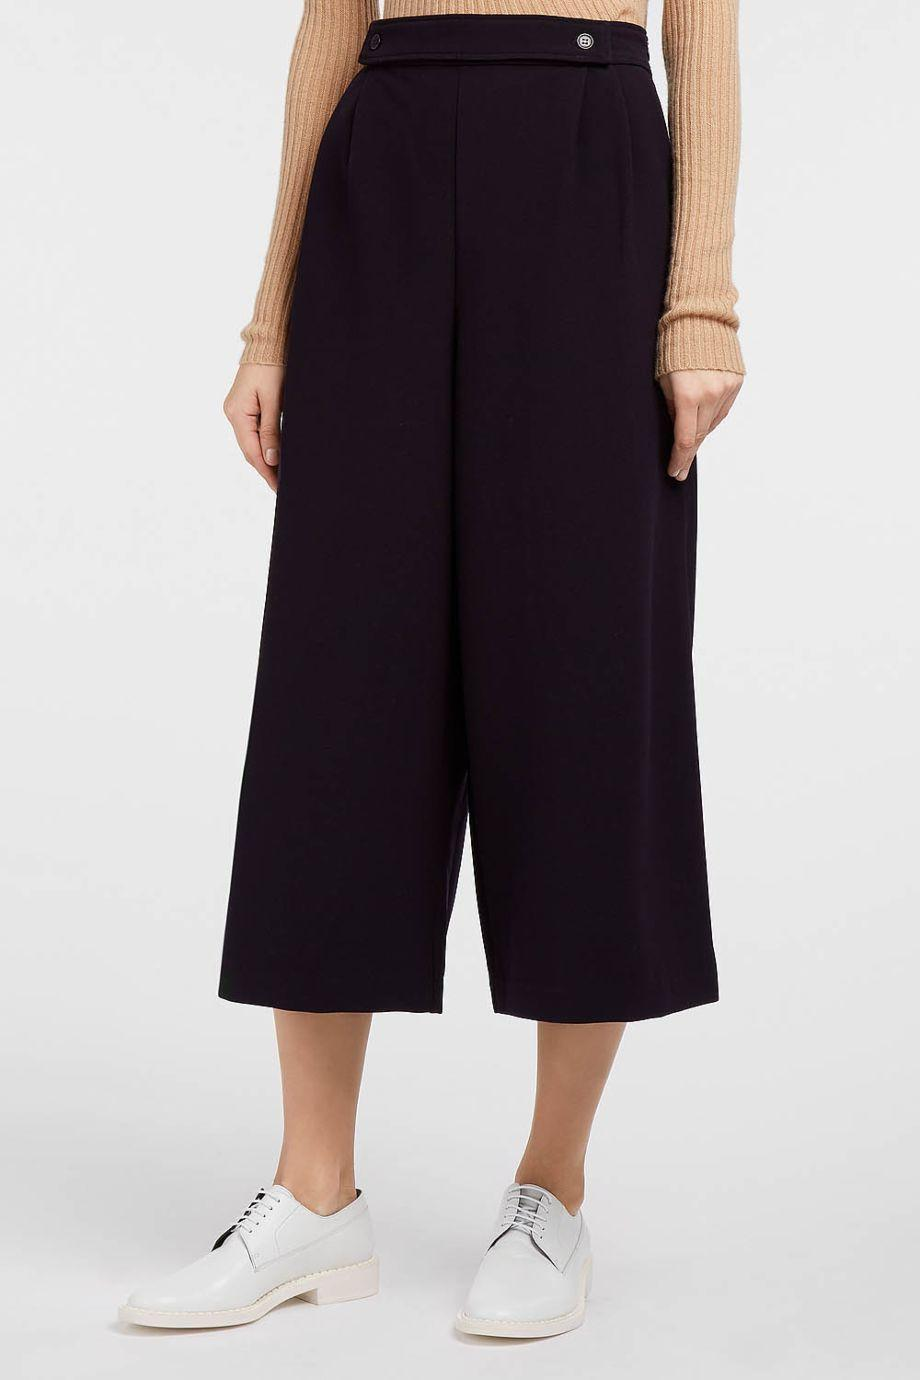 Paul & Joe Sister Auguste Stretch-Twill Culottes